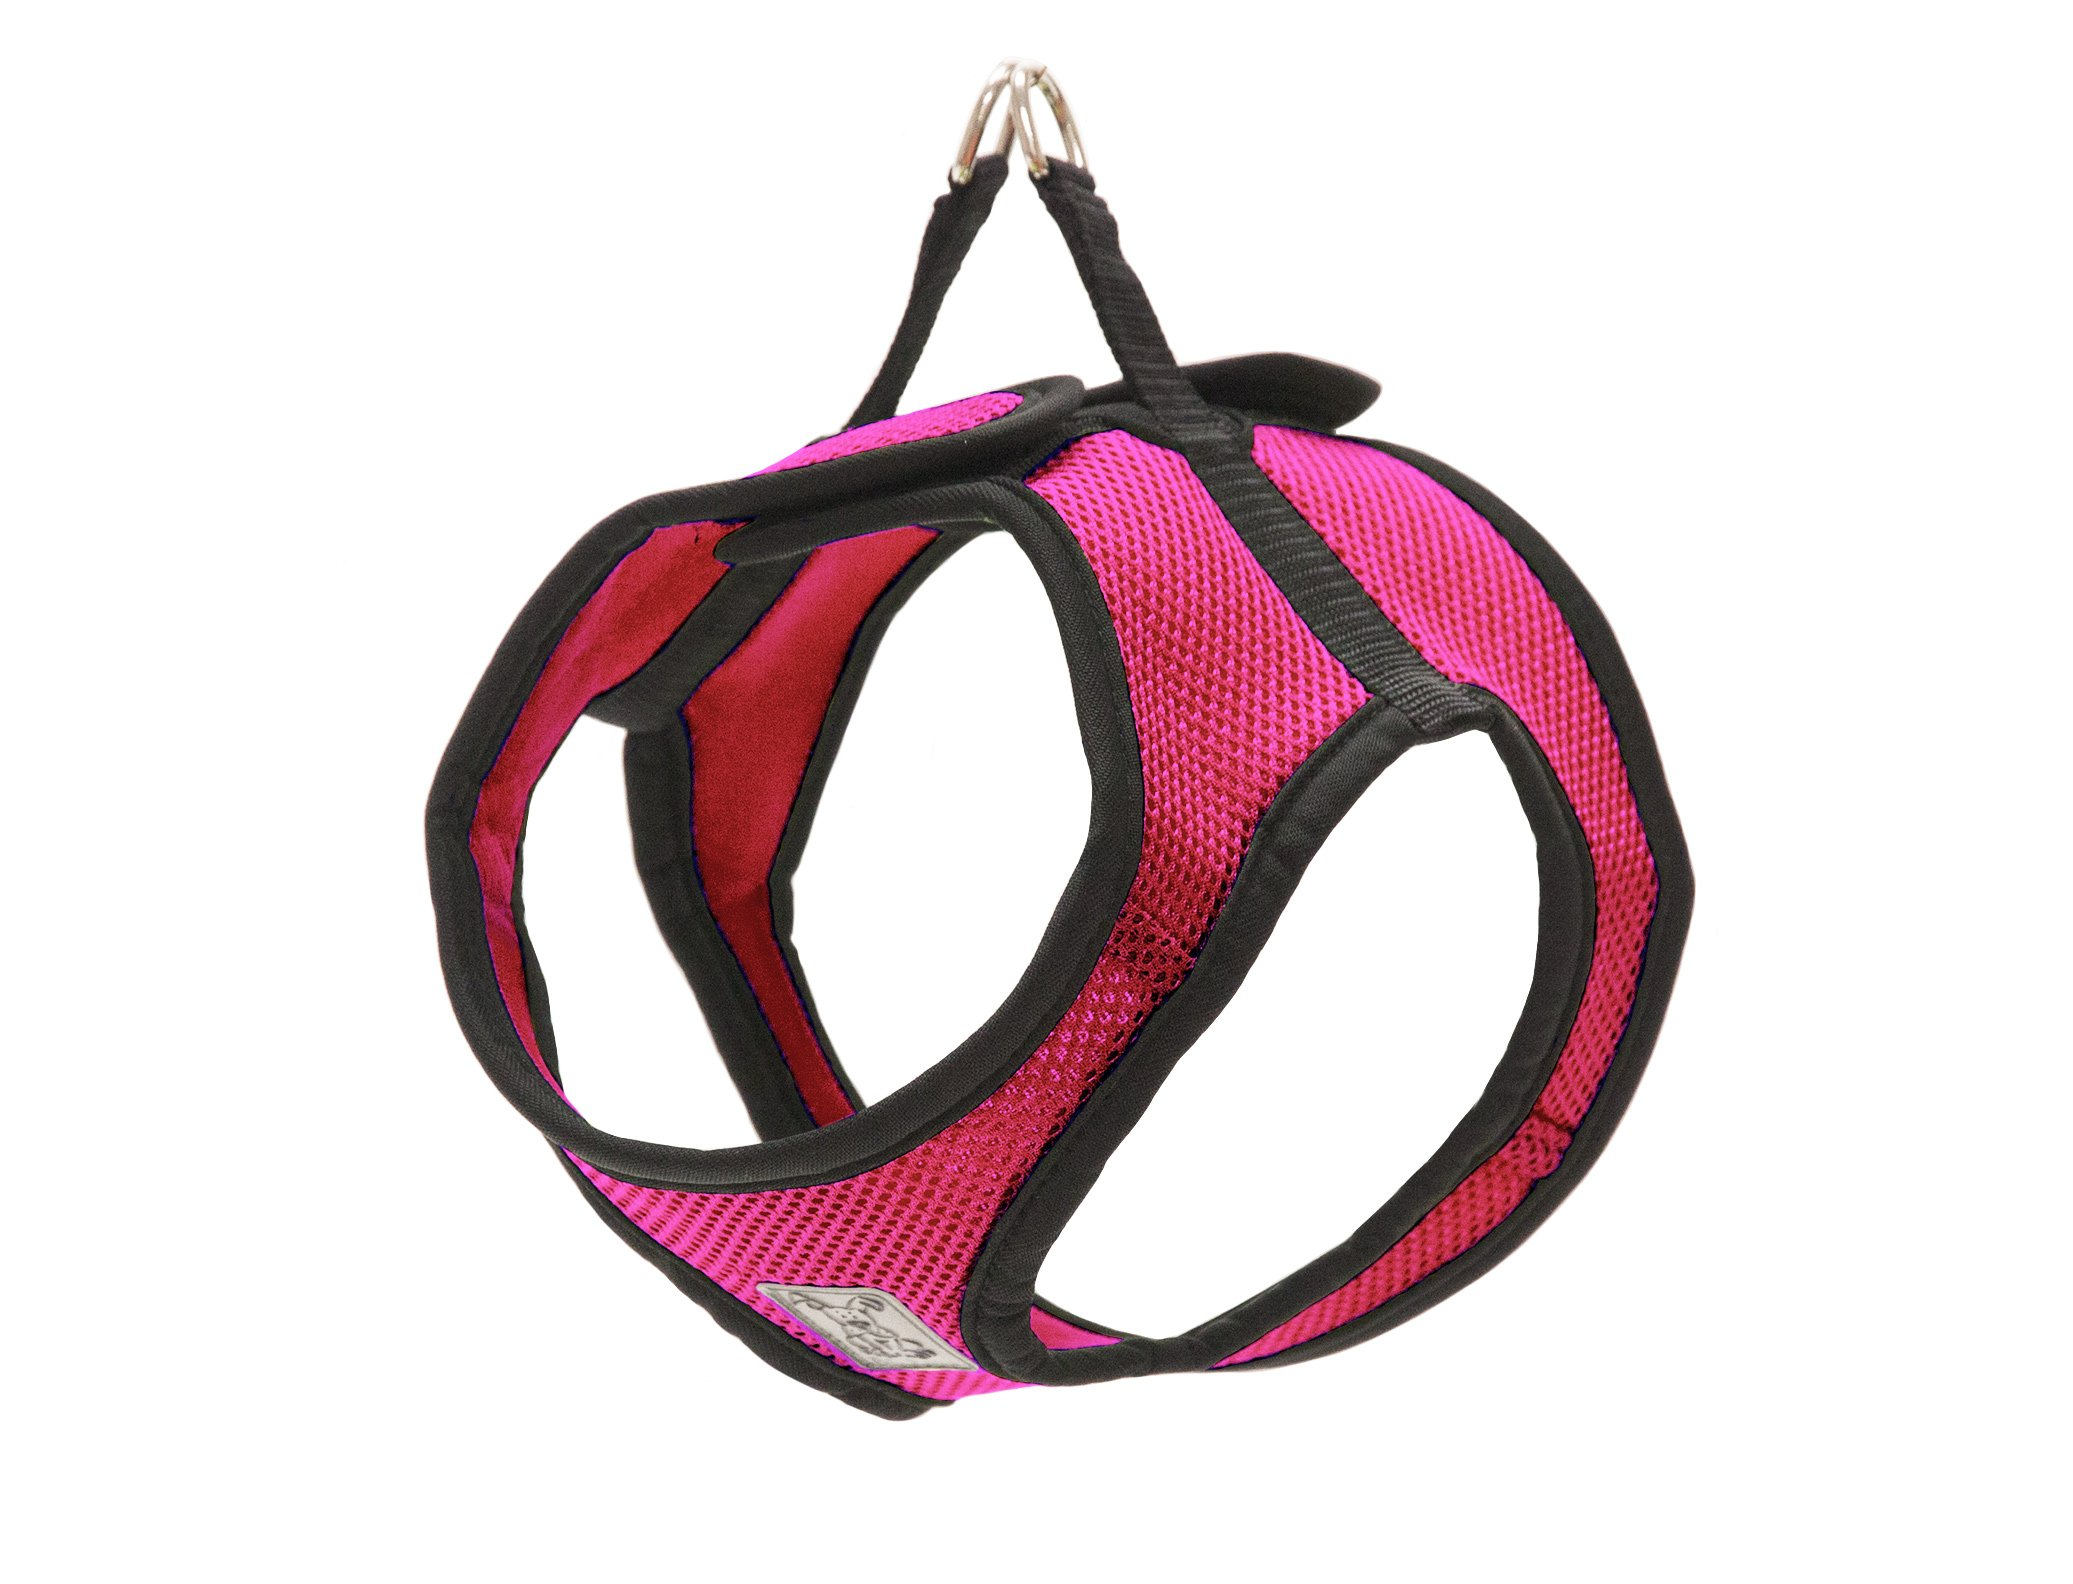 RC Pet Products Step in Cirque Soft Walking Dog Harness, Small, Raspberry